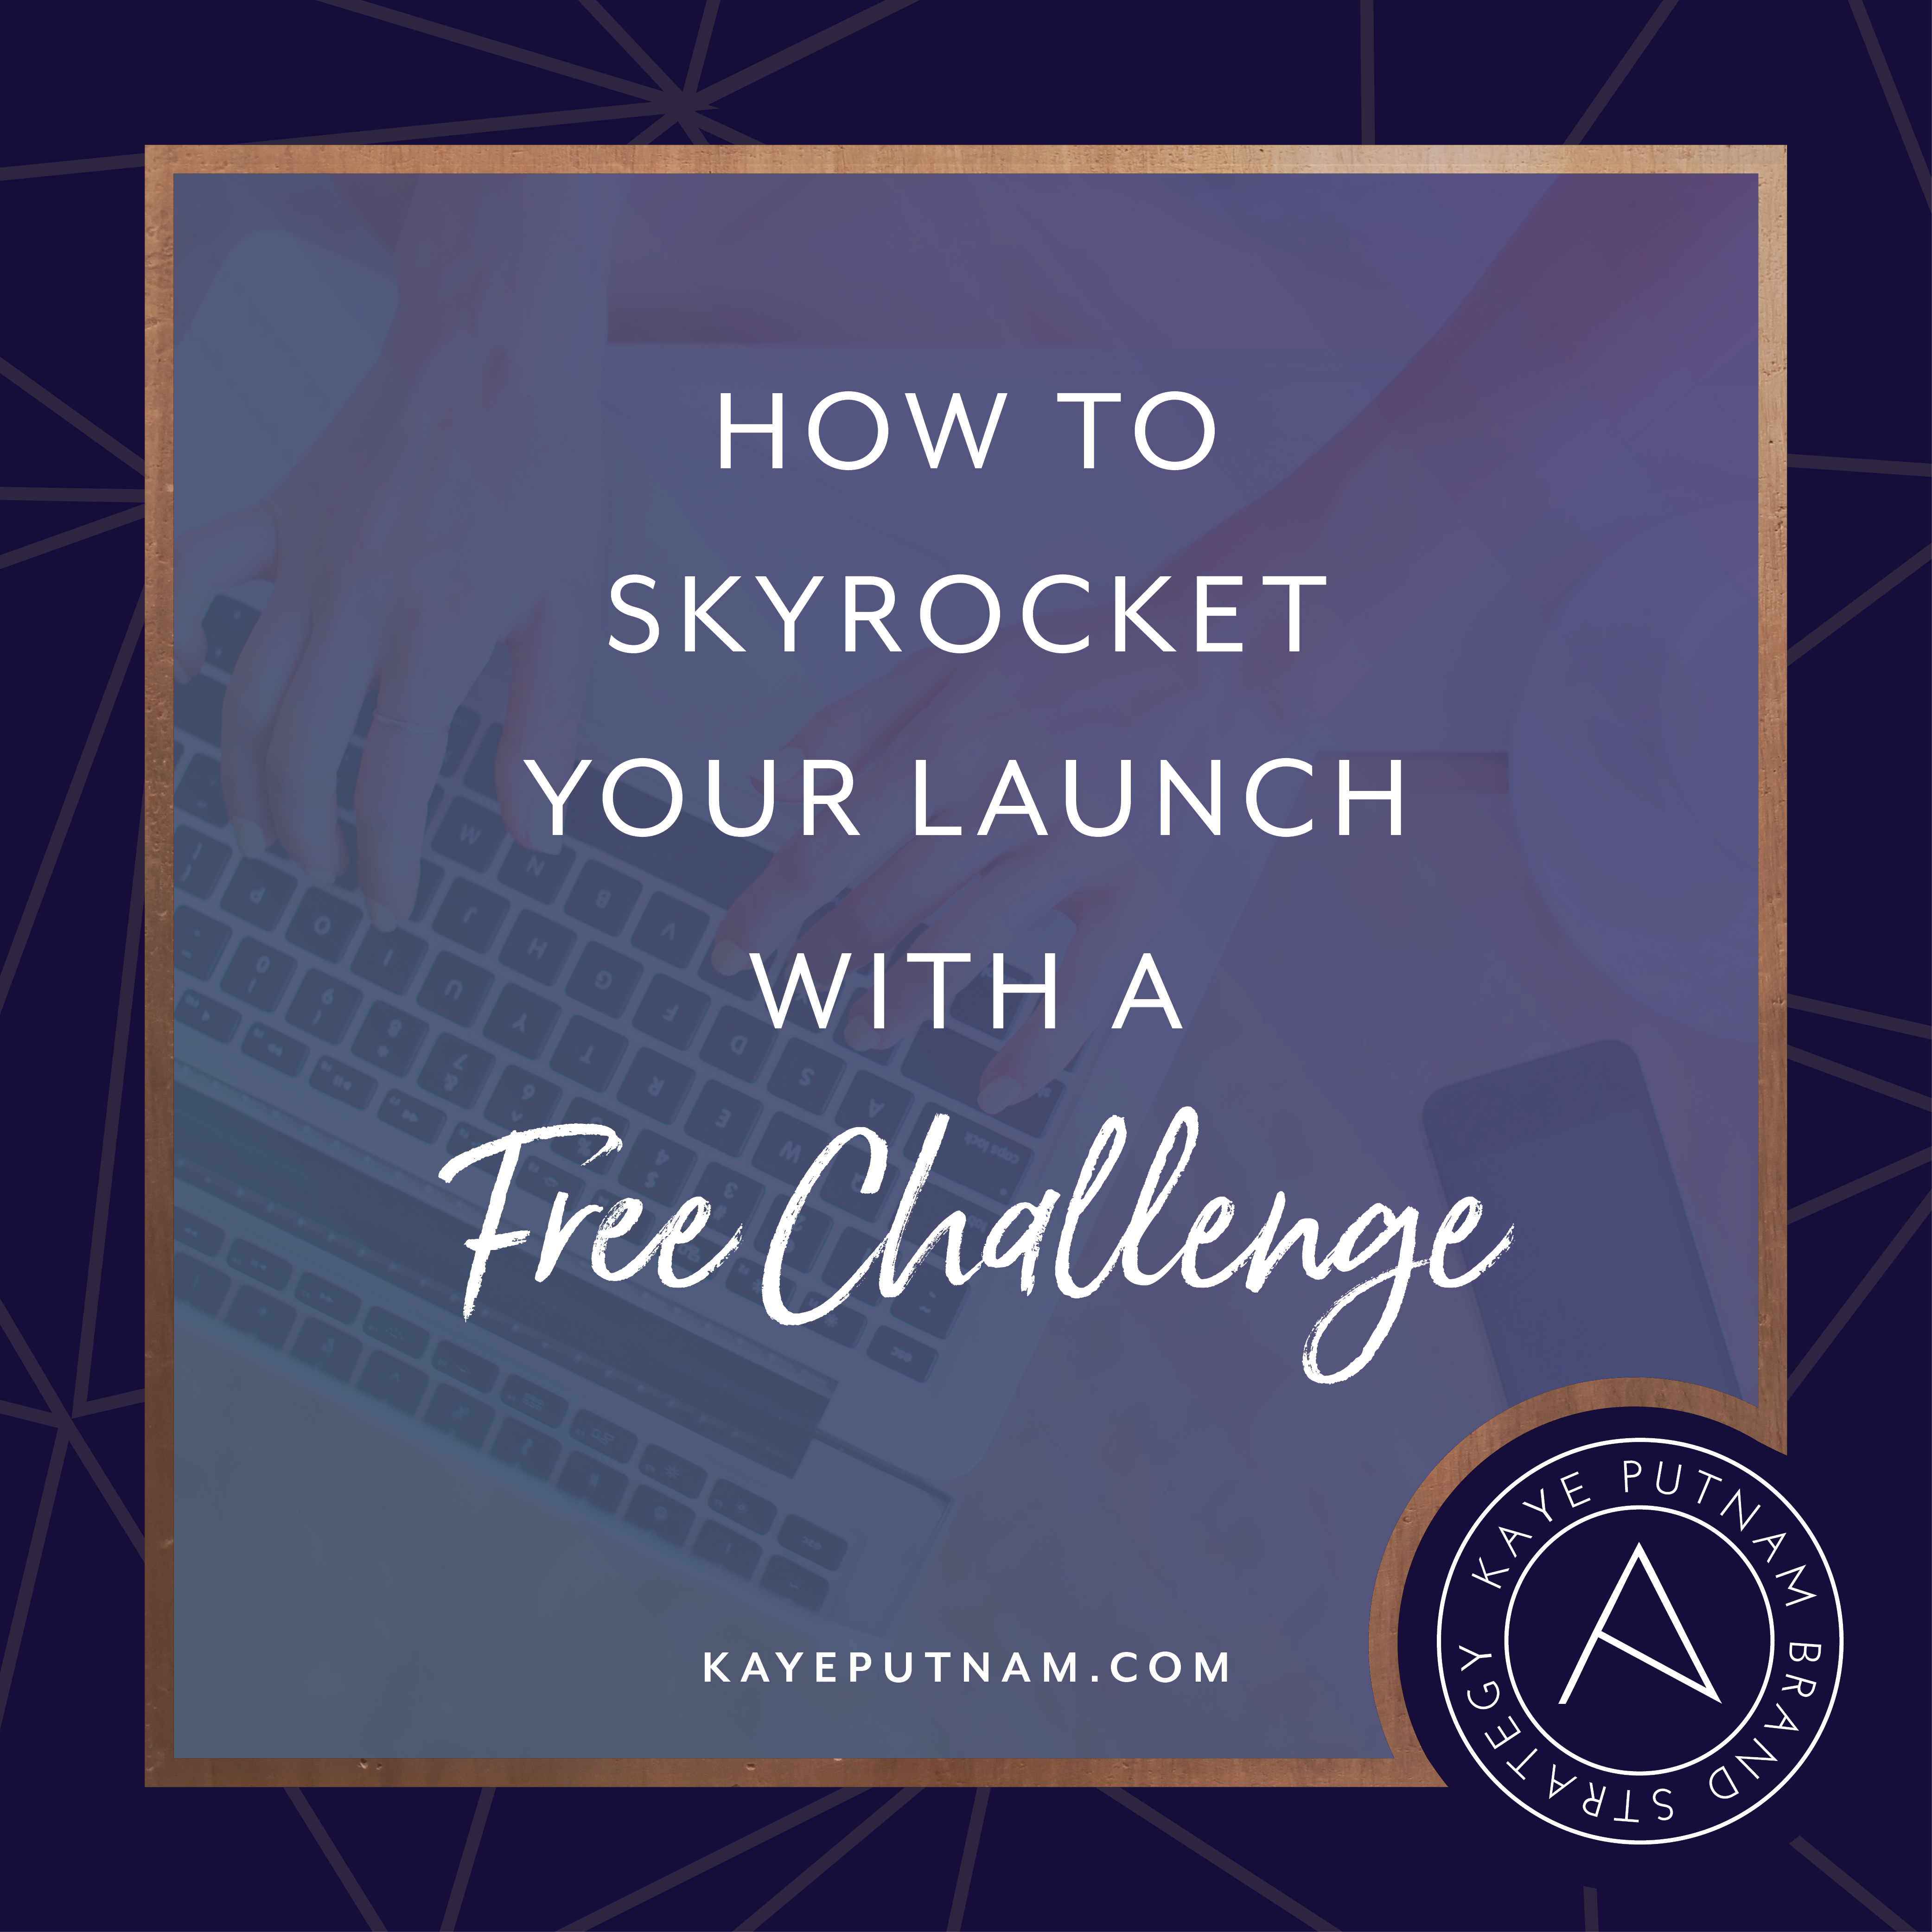 How to Skyrocket Your Launch with a Free Challenge